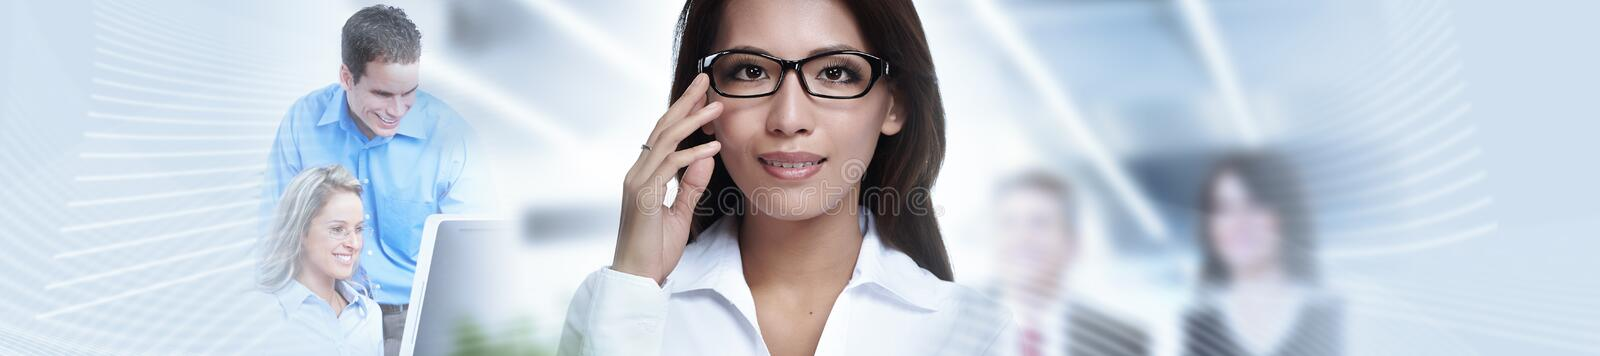 Chinese business woman. Financial investor women on stock market abstract background royalty free stock photo